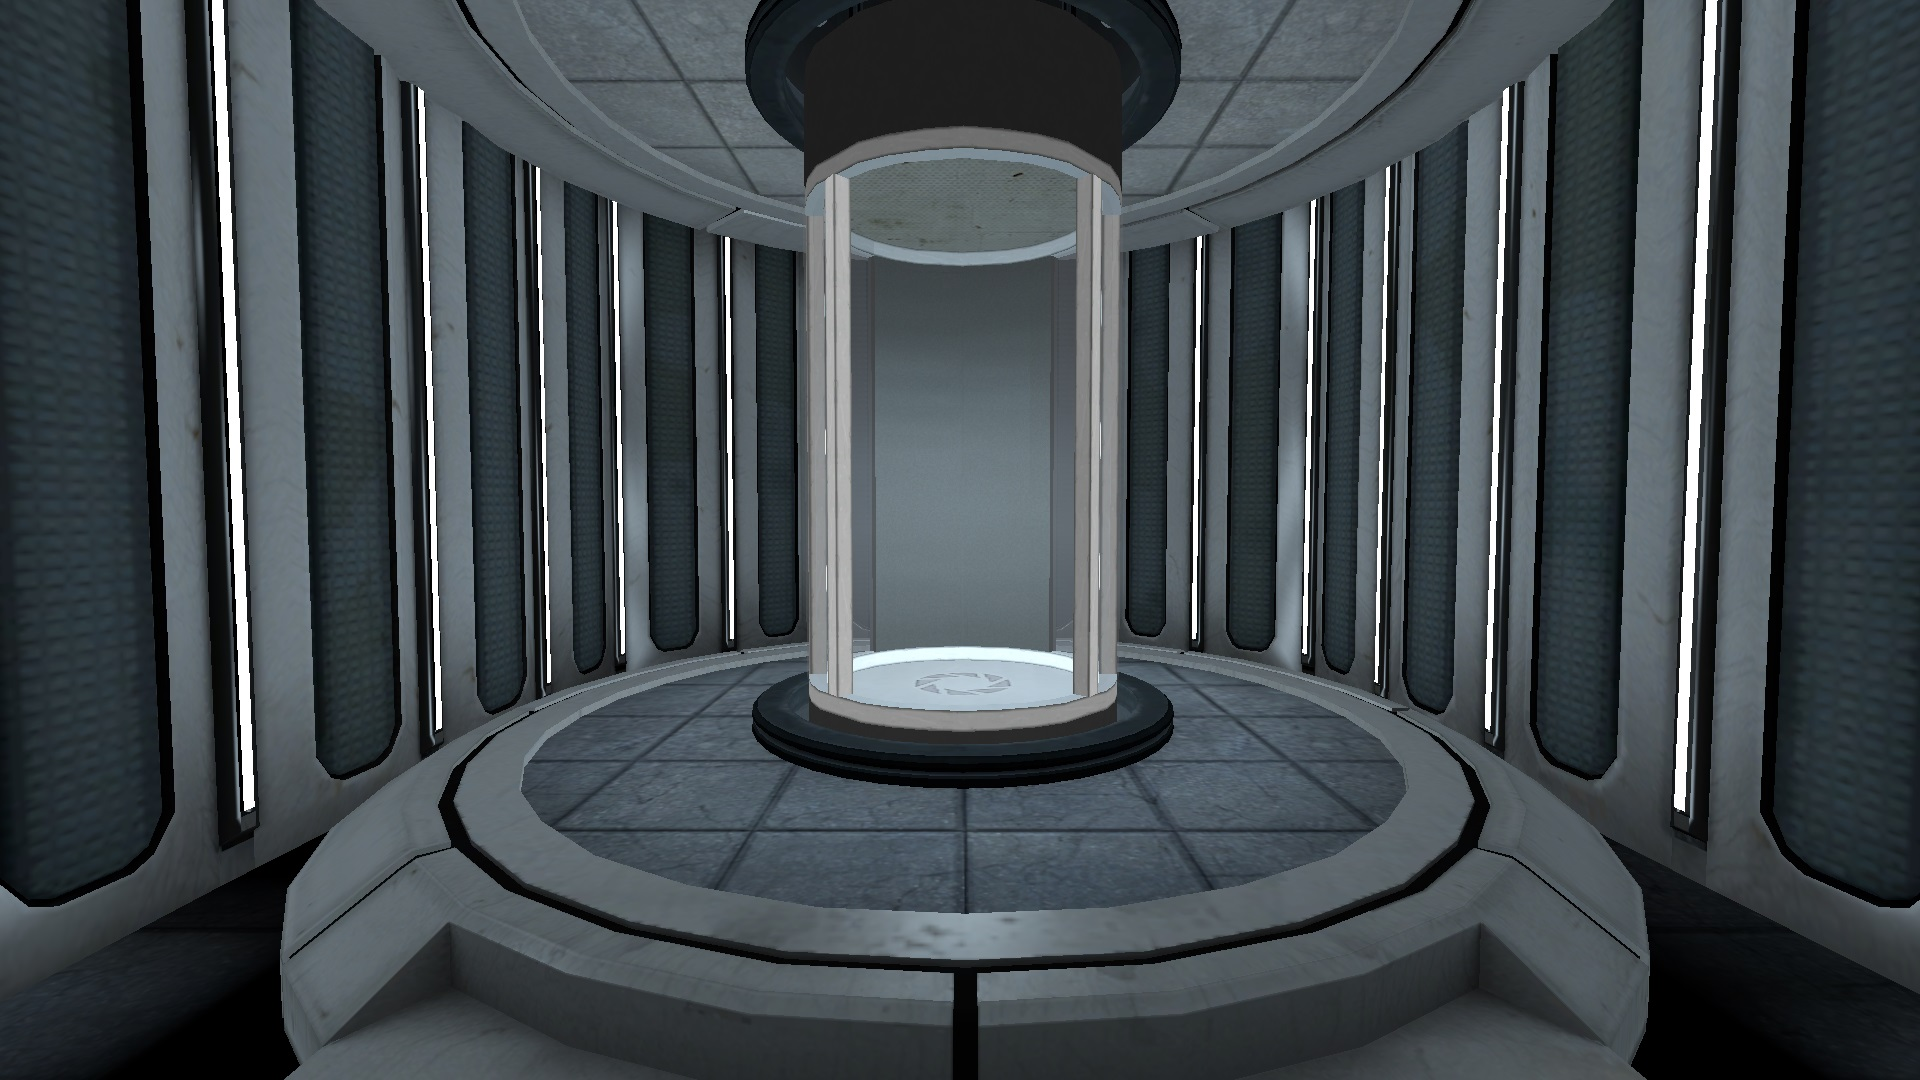 The elevator at the end is smaller than the regular elevators in Portal and travels through vital apparatus vents.